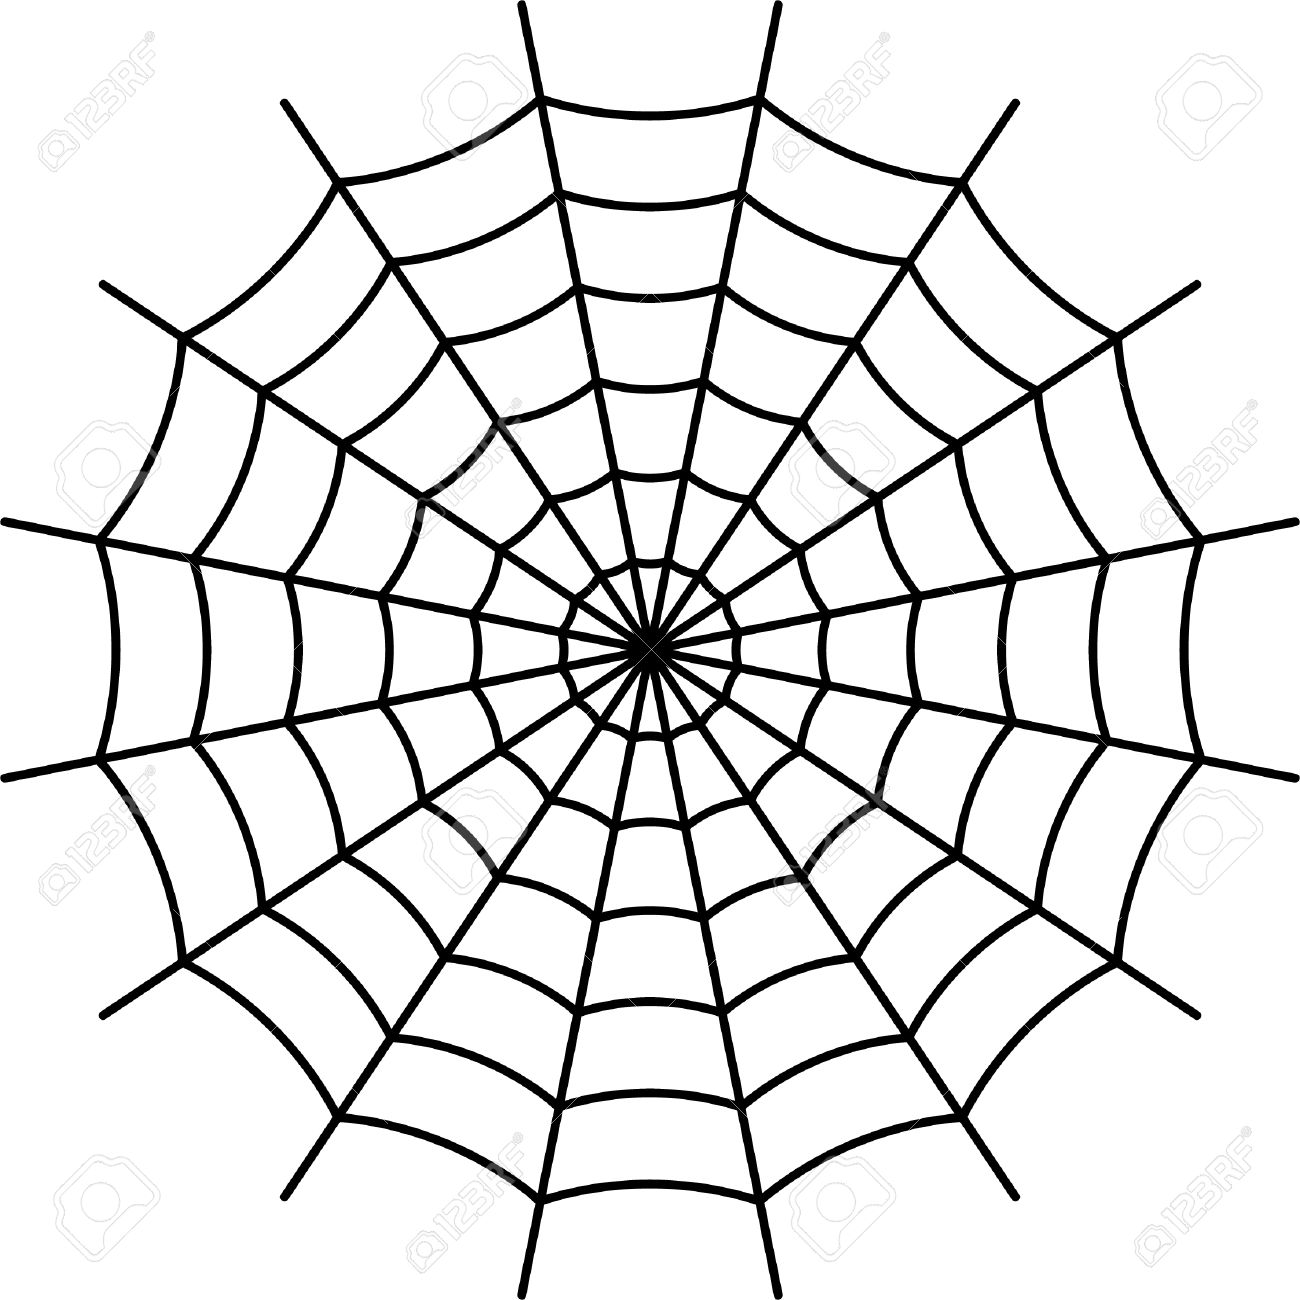 spider web black vector royalty free cliparts vectors and stock rh 123rf com free vector spider web pattern spider web vector free download